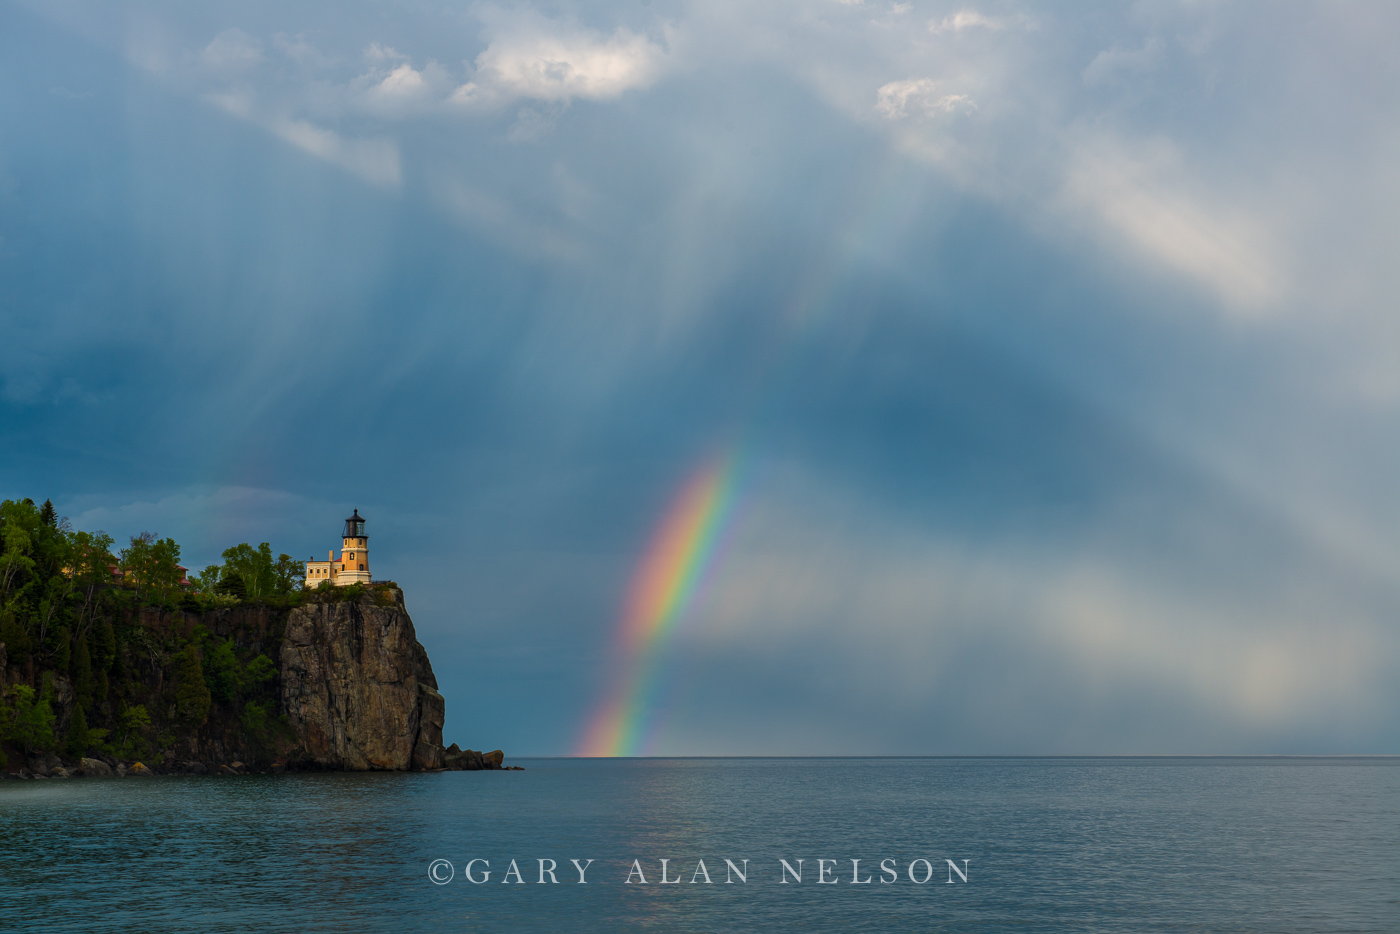 lake superior, split rock, minnesota, rainbow, lighthouse, photo